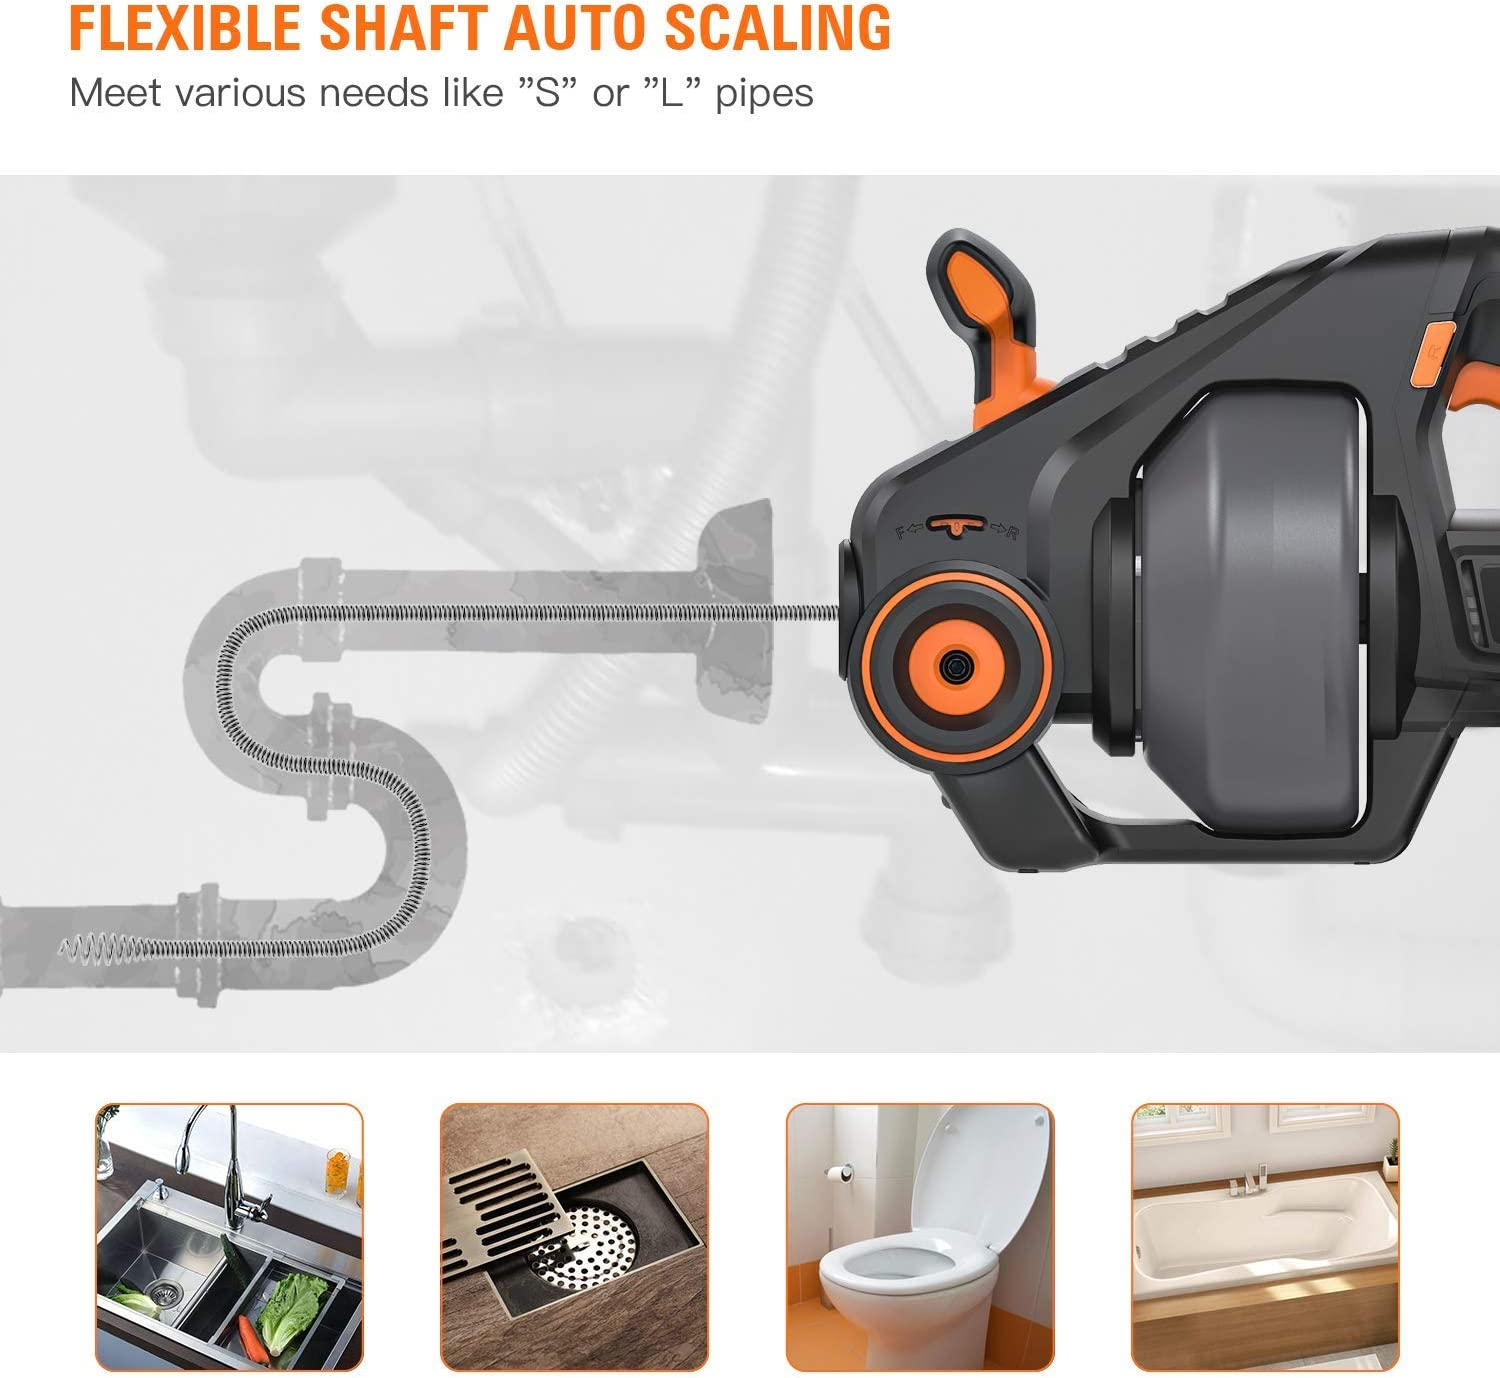 Tacklife Automatic Cordless Drain Clog Remover Perfect Replacement for Drain Snake 25Ft Renewed HGDDC1A 7.5M 20-Volt MAX Li-Ion Replaceable Flexible Shaft Drain Auger